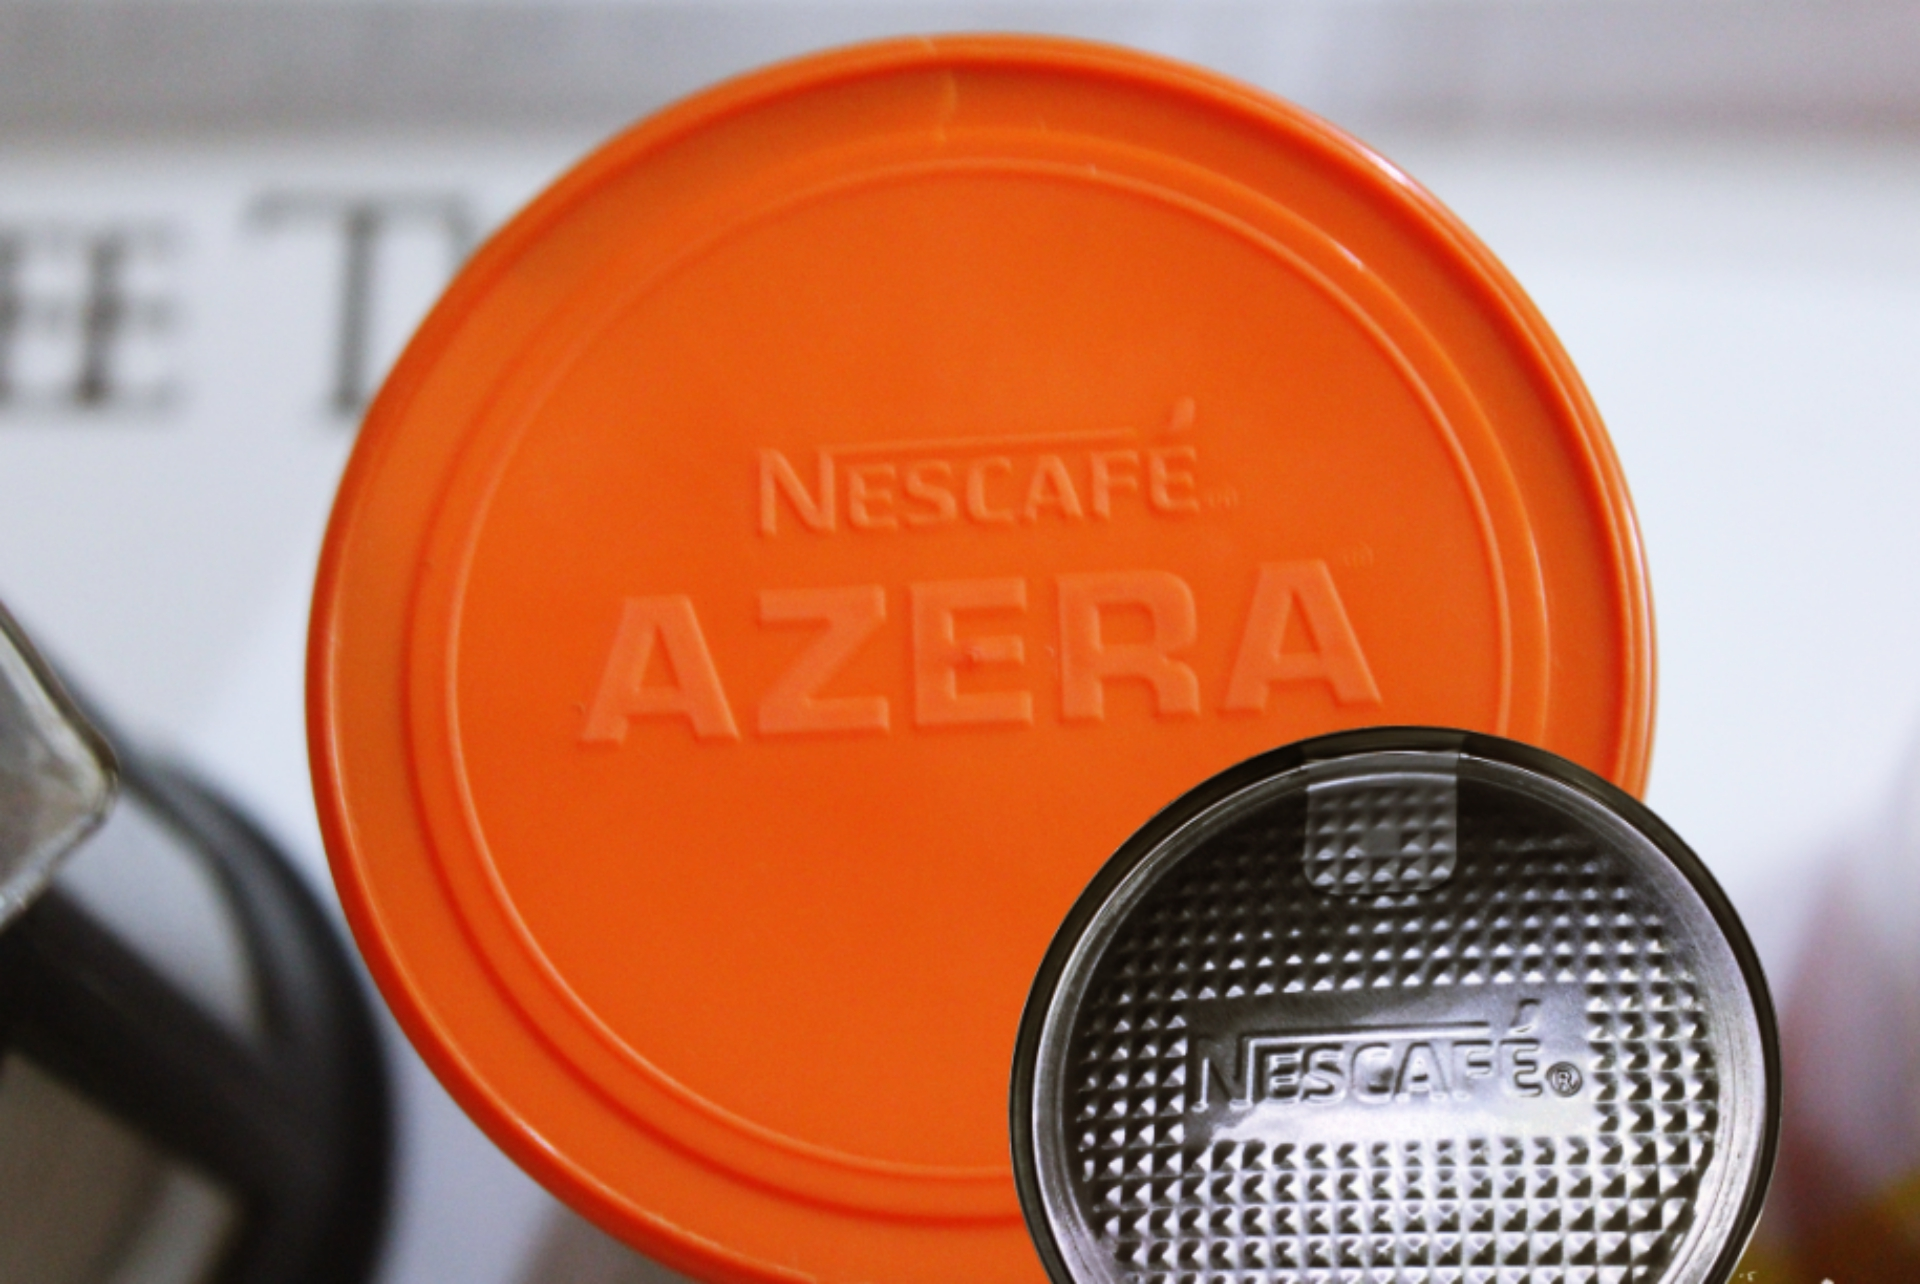 Nescafe Azera India